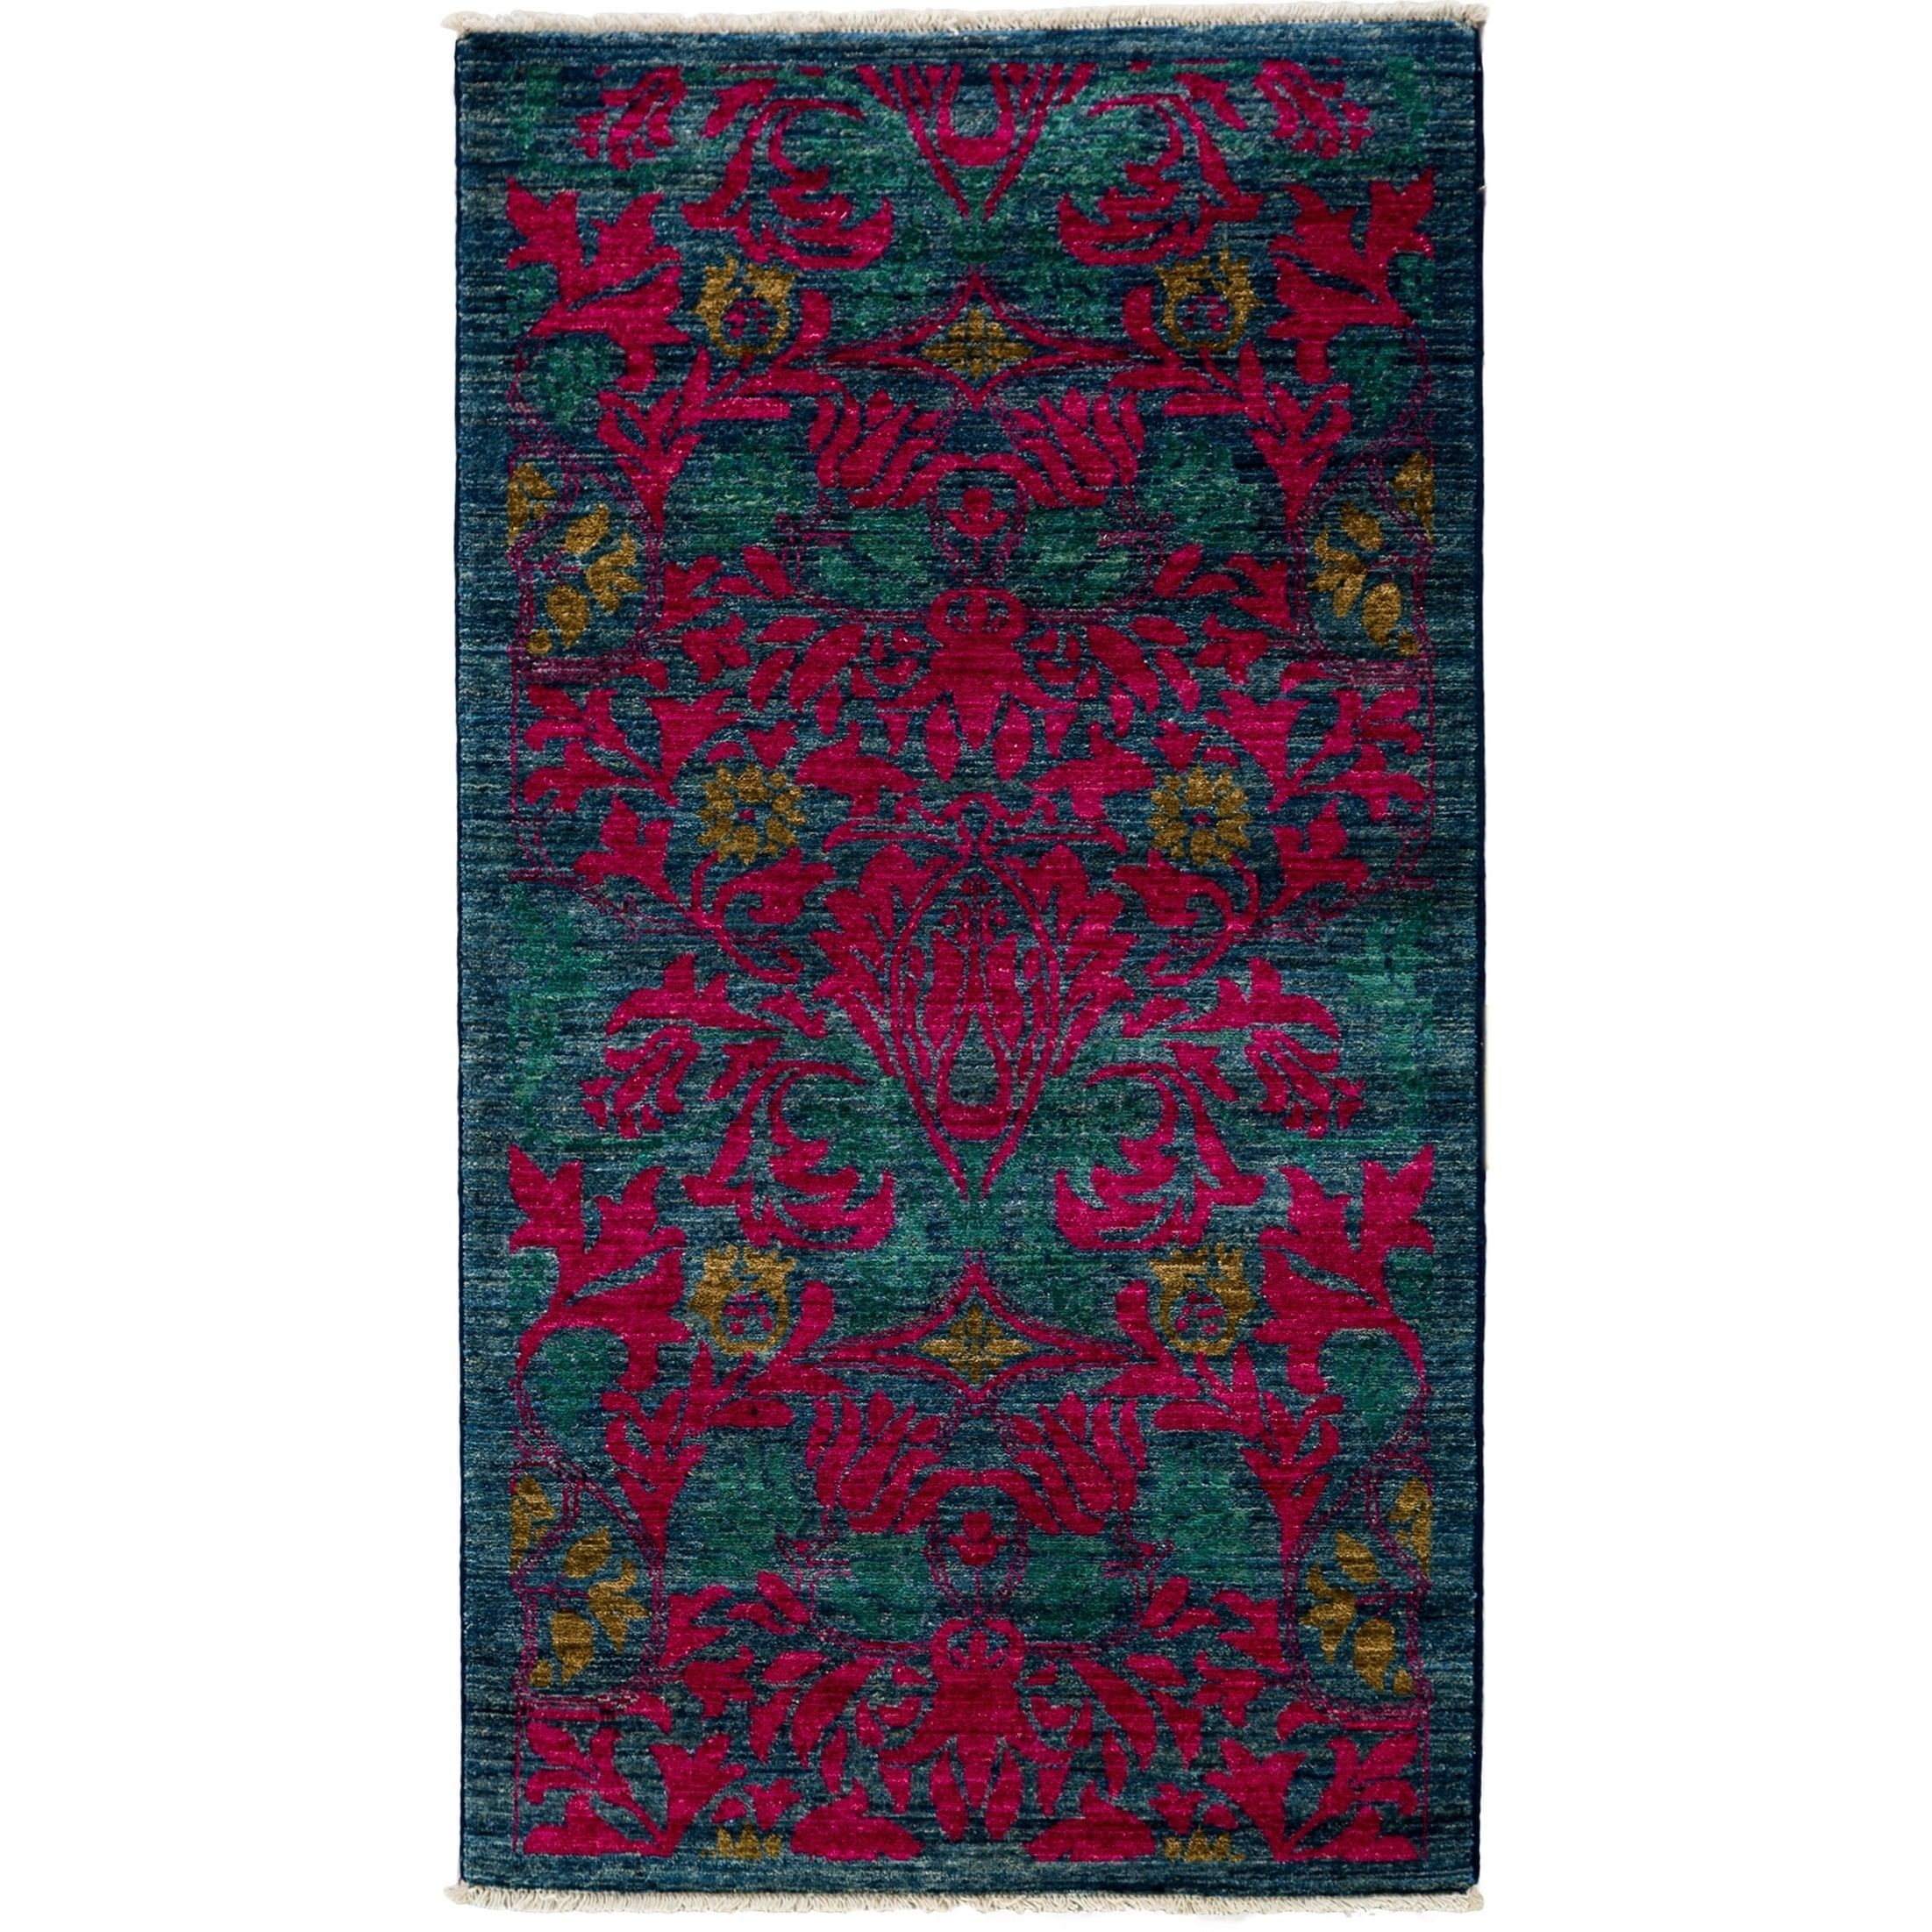 "Kananayem Hand Knotted Area Rug (2'10"" X 5'3"") (Pink - 2'10"" X 5'3""), Size 3' x 5' (Wool, Oriental)"